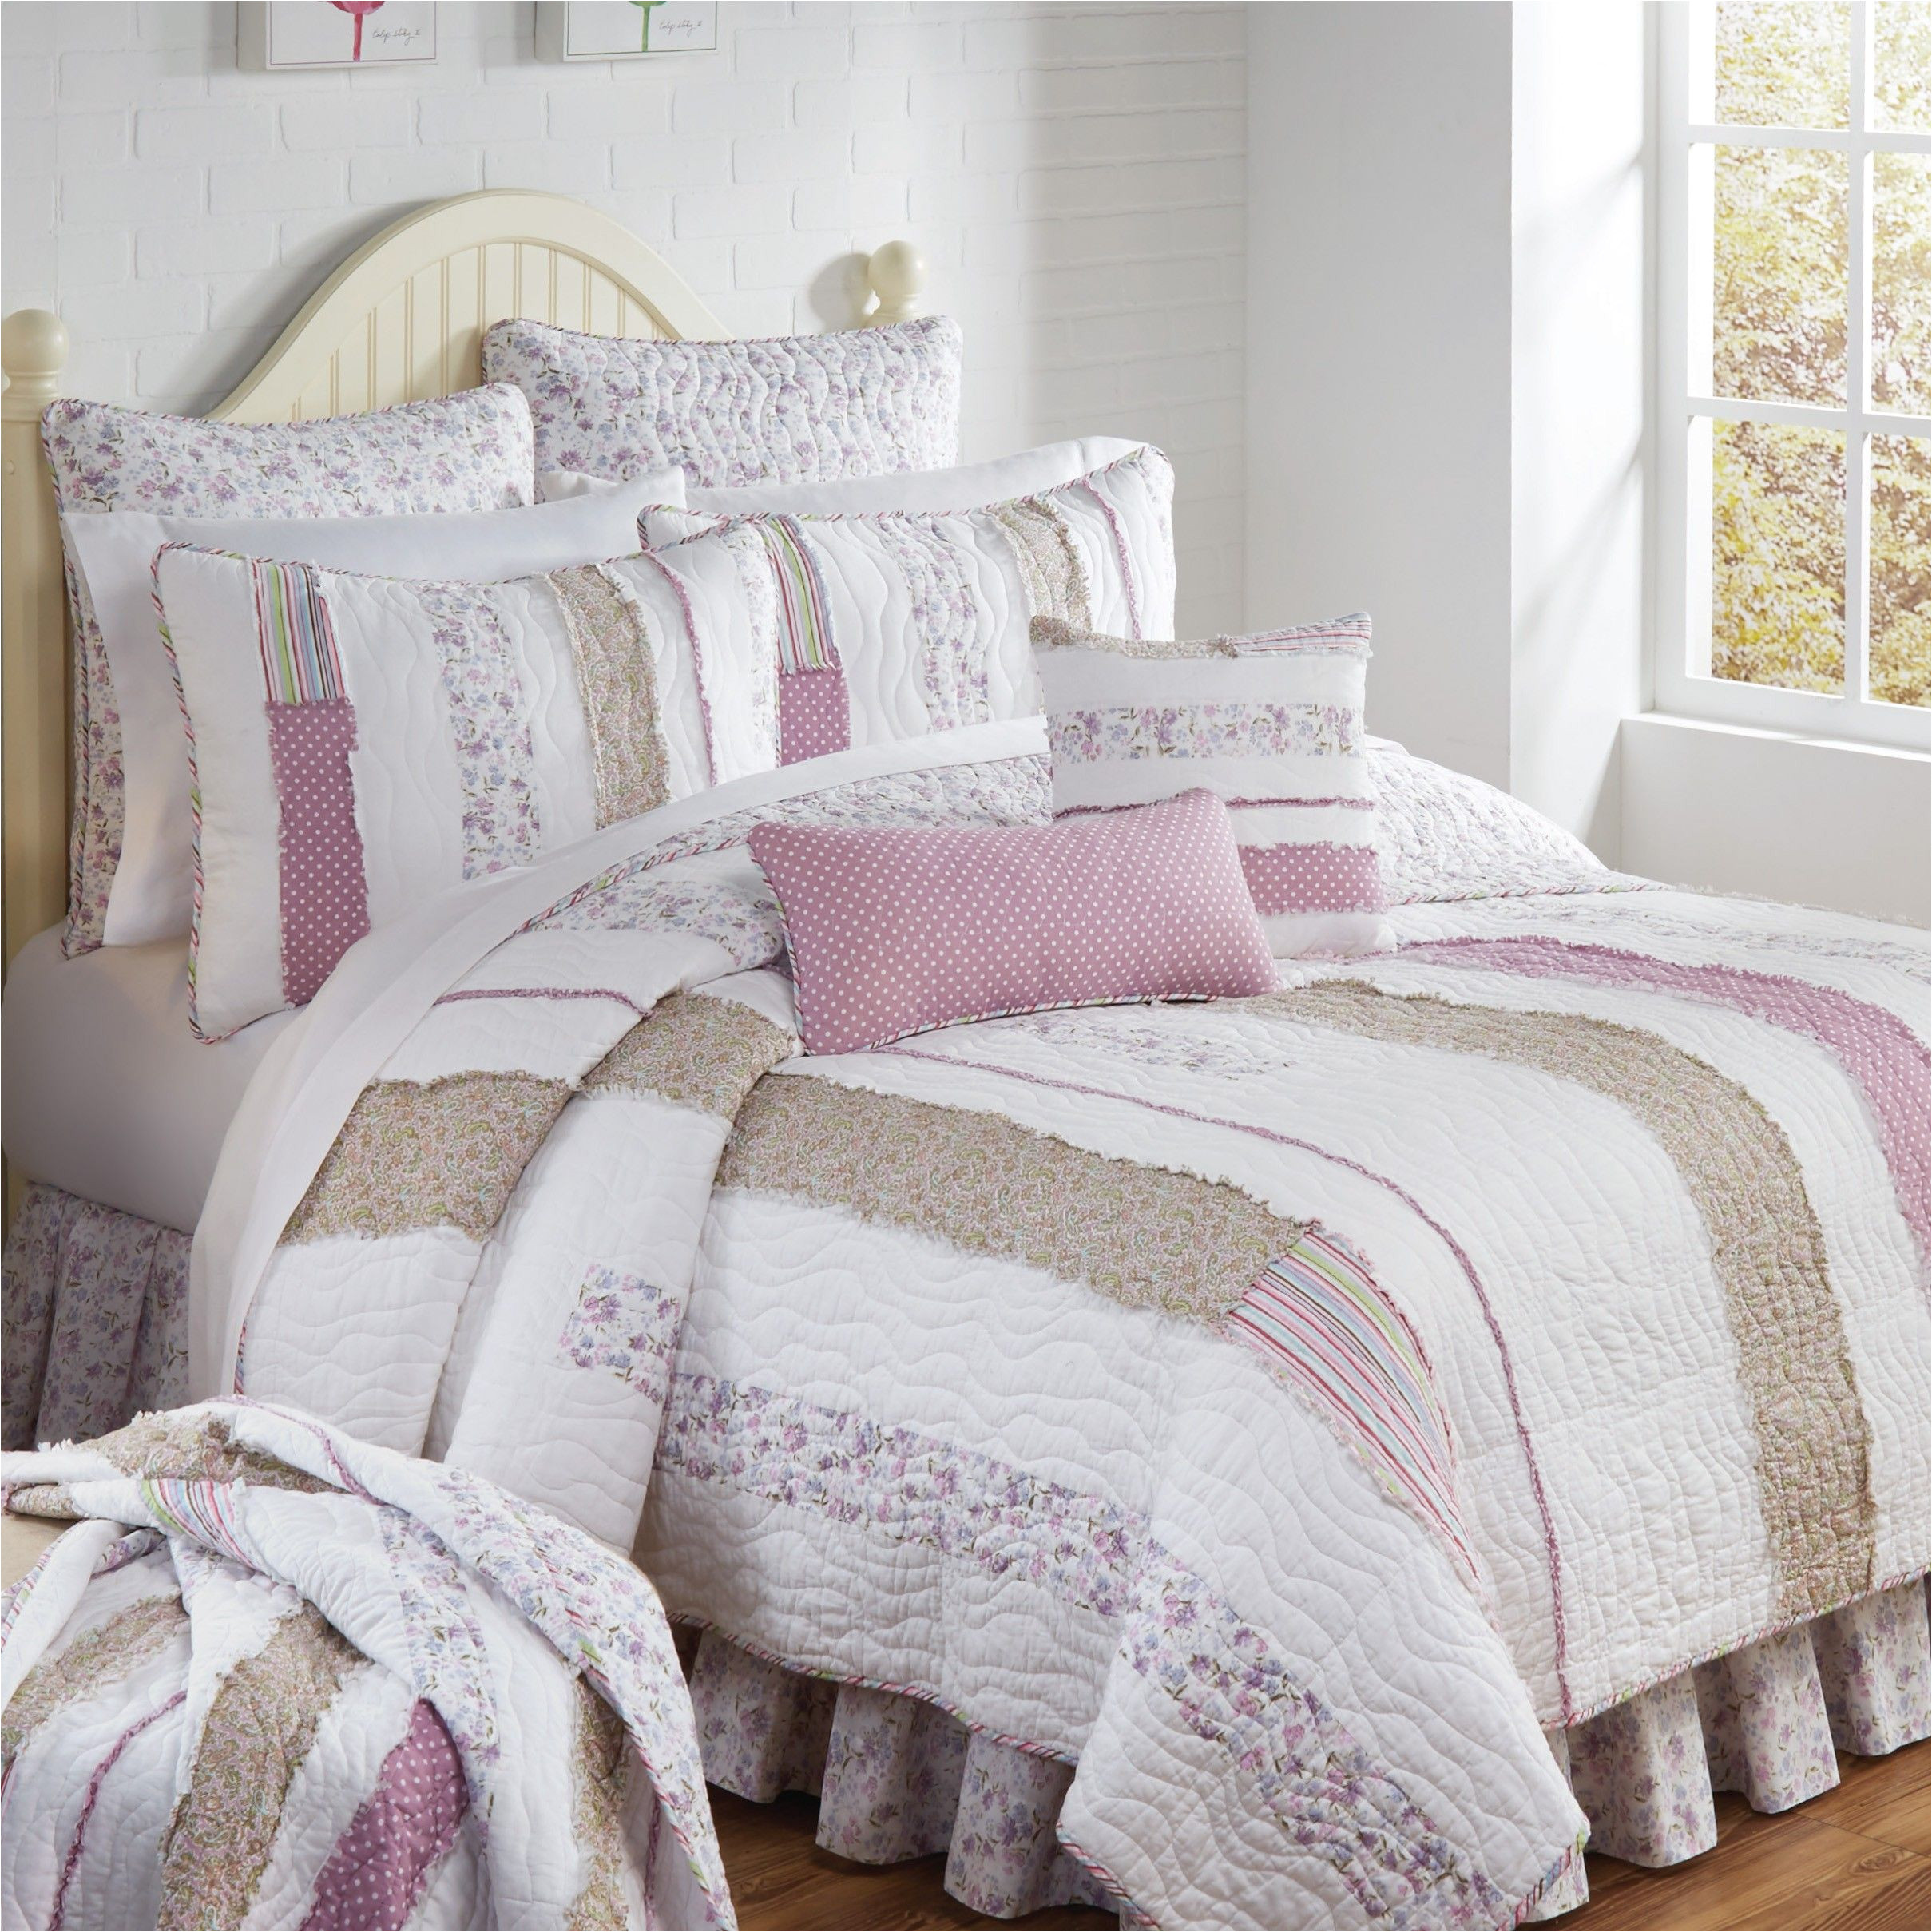 lavender rail quilted bedding collection donna sharp